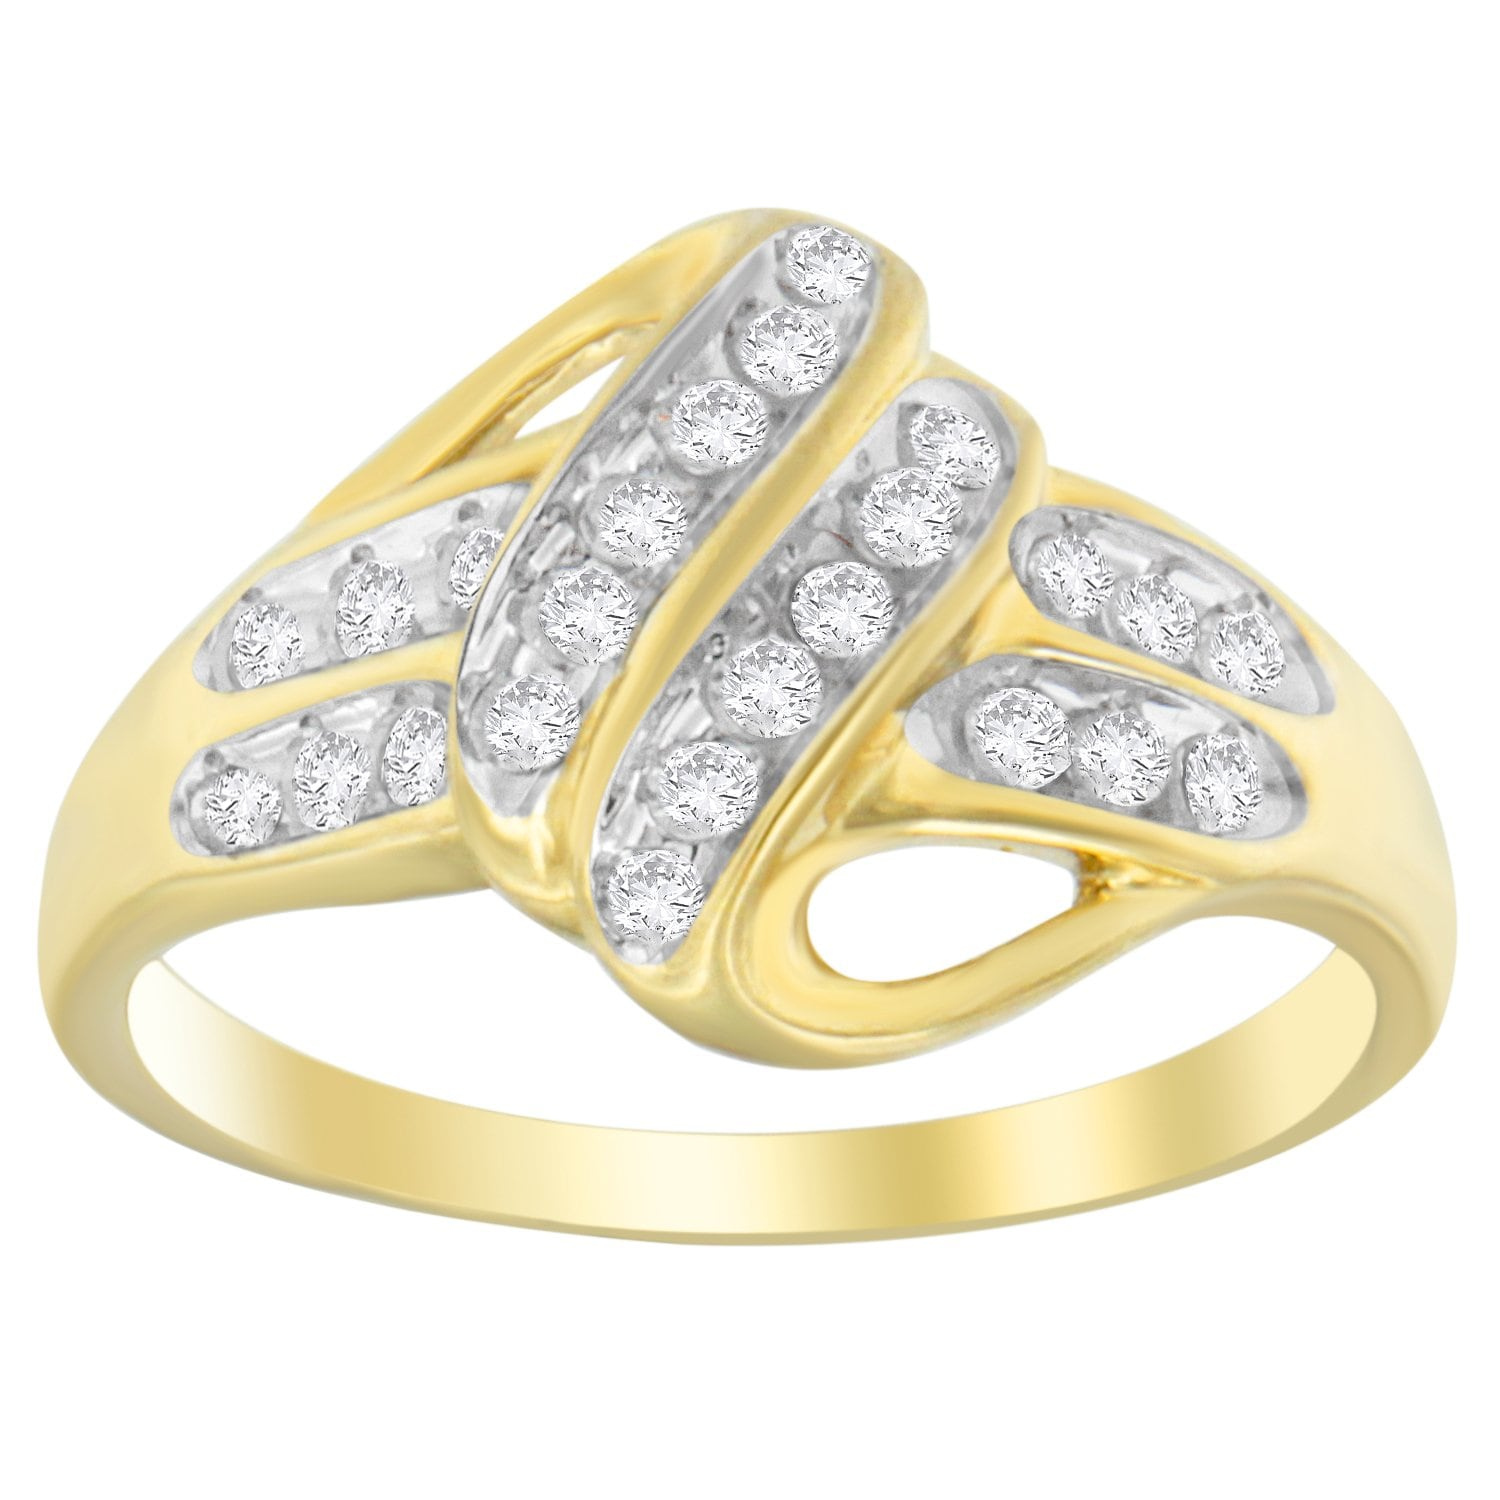 VJG 10k Yellow Gold-Plated Sterling Silver 1/4 ct. TDW Diamond Cross-Over Ring (I-J, I2-I3)